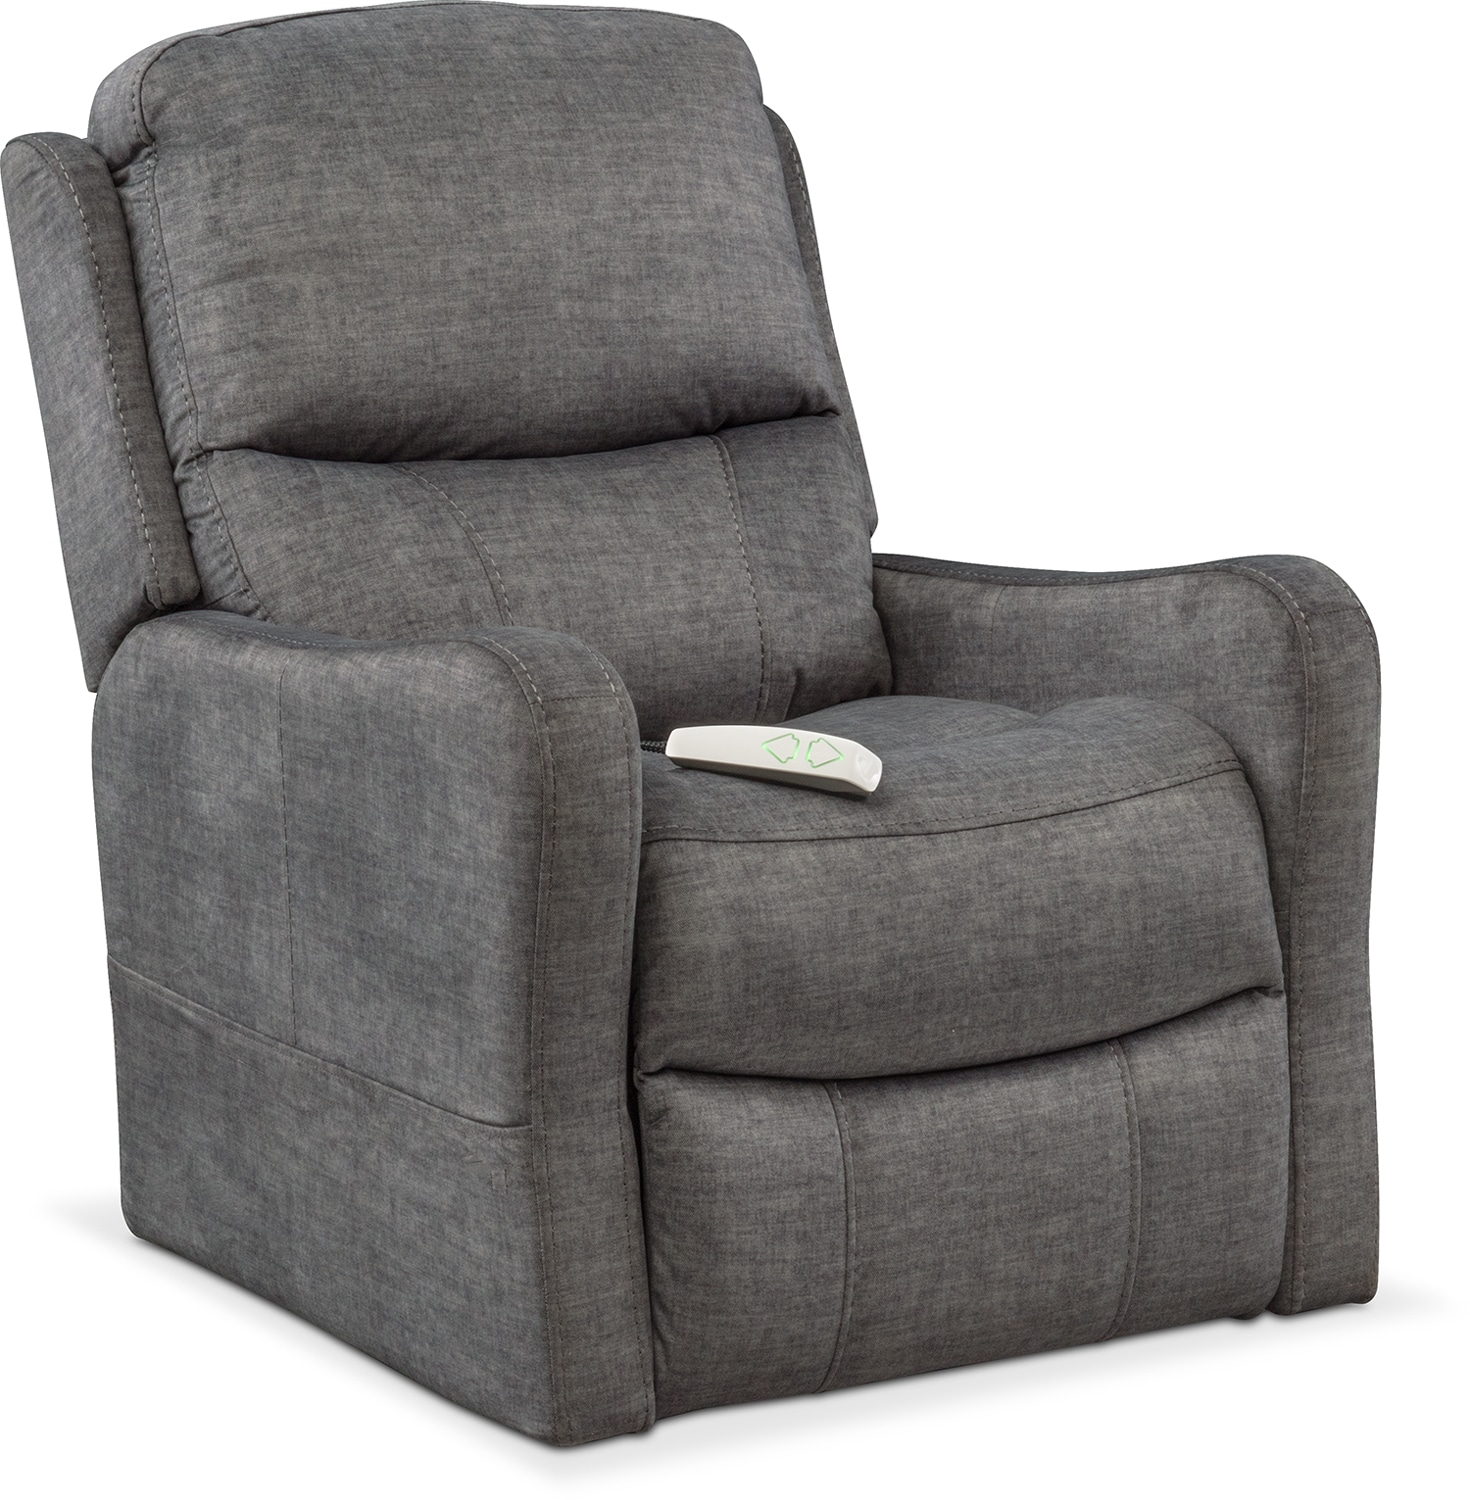 Cabo Power Lift Recliner Gray American Signature Furniture